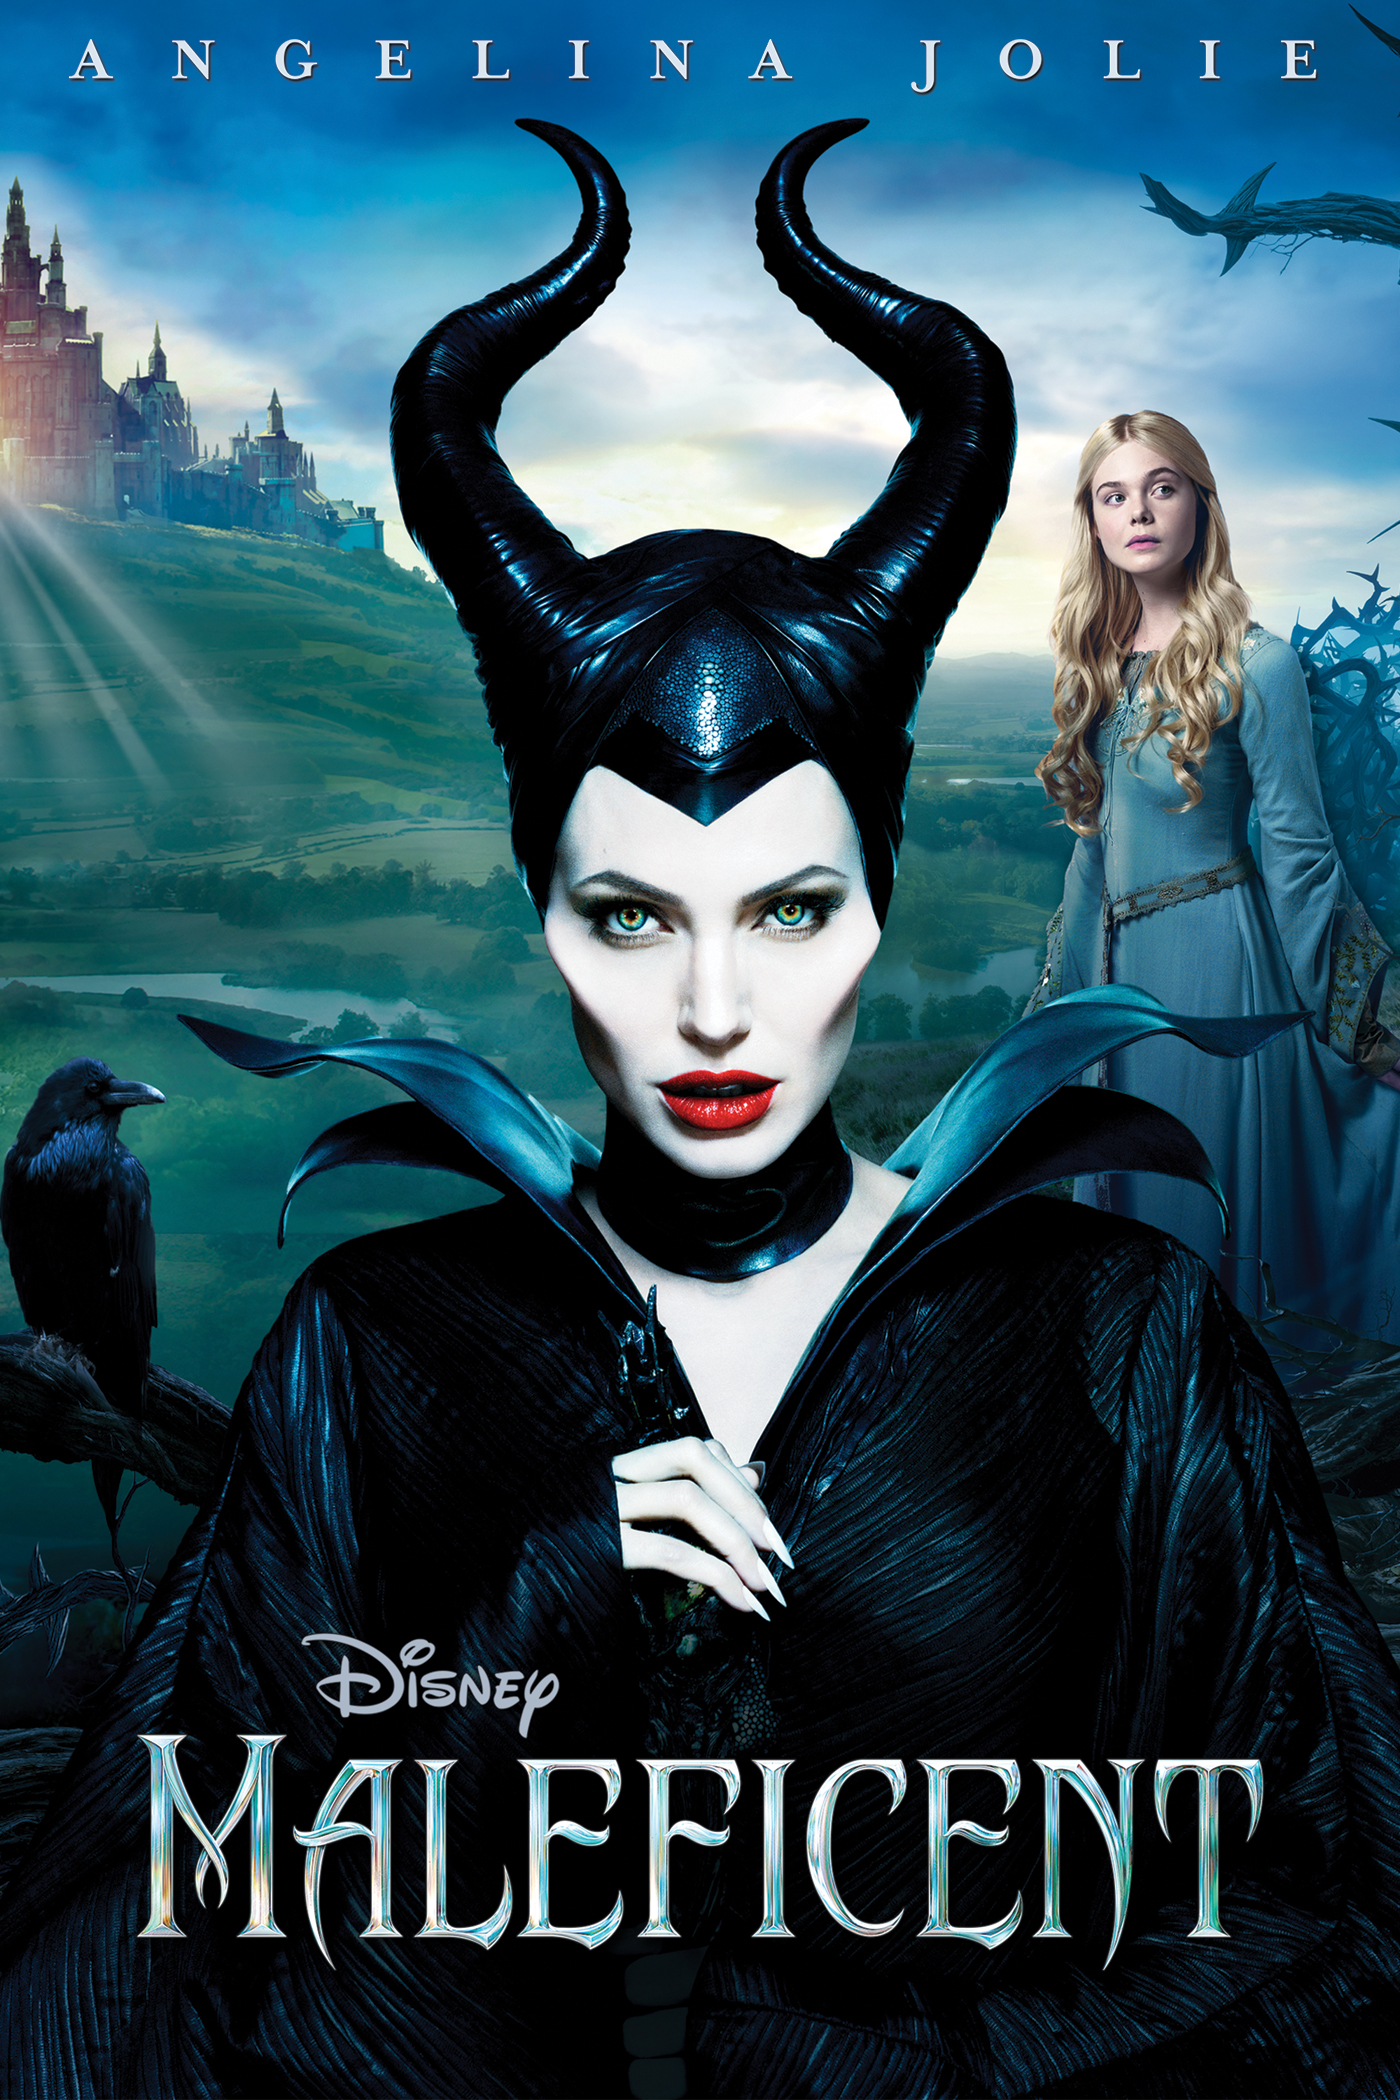 Maleficent Movie In Hindi